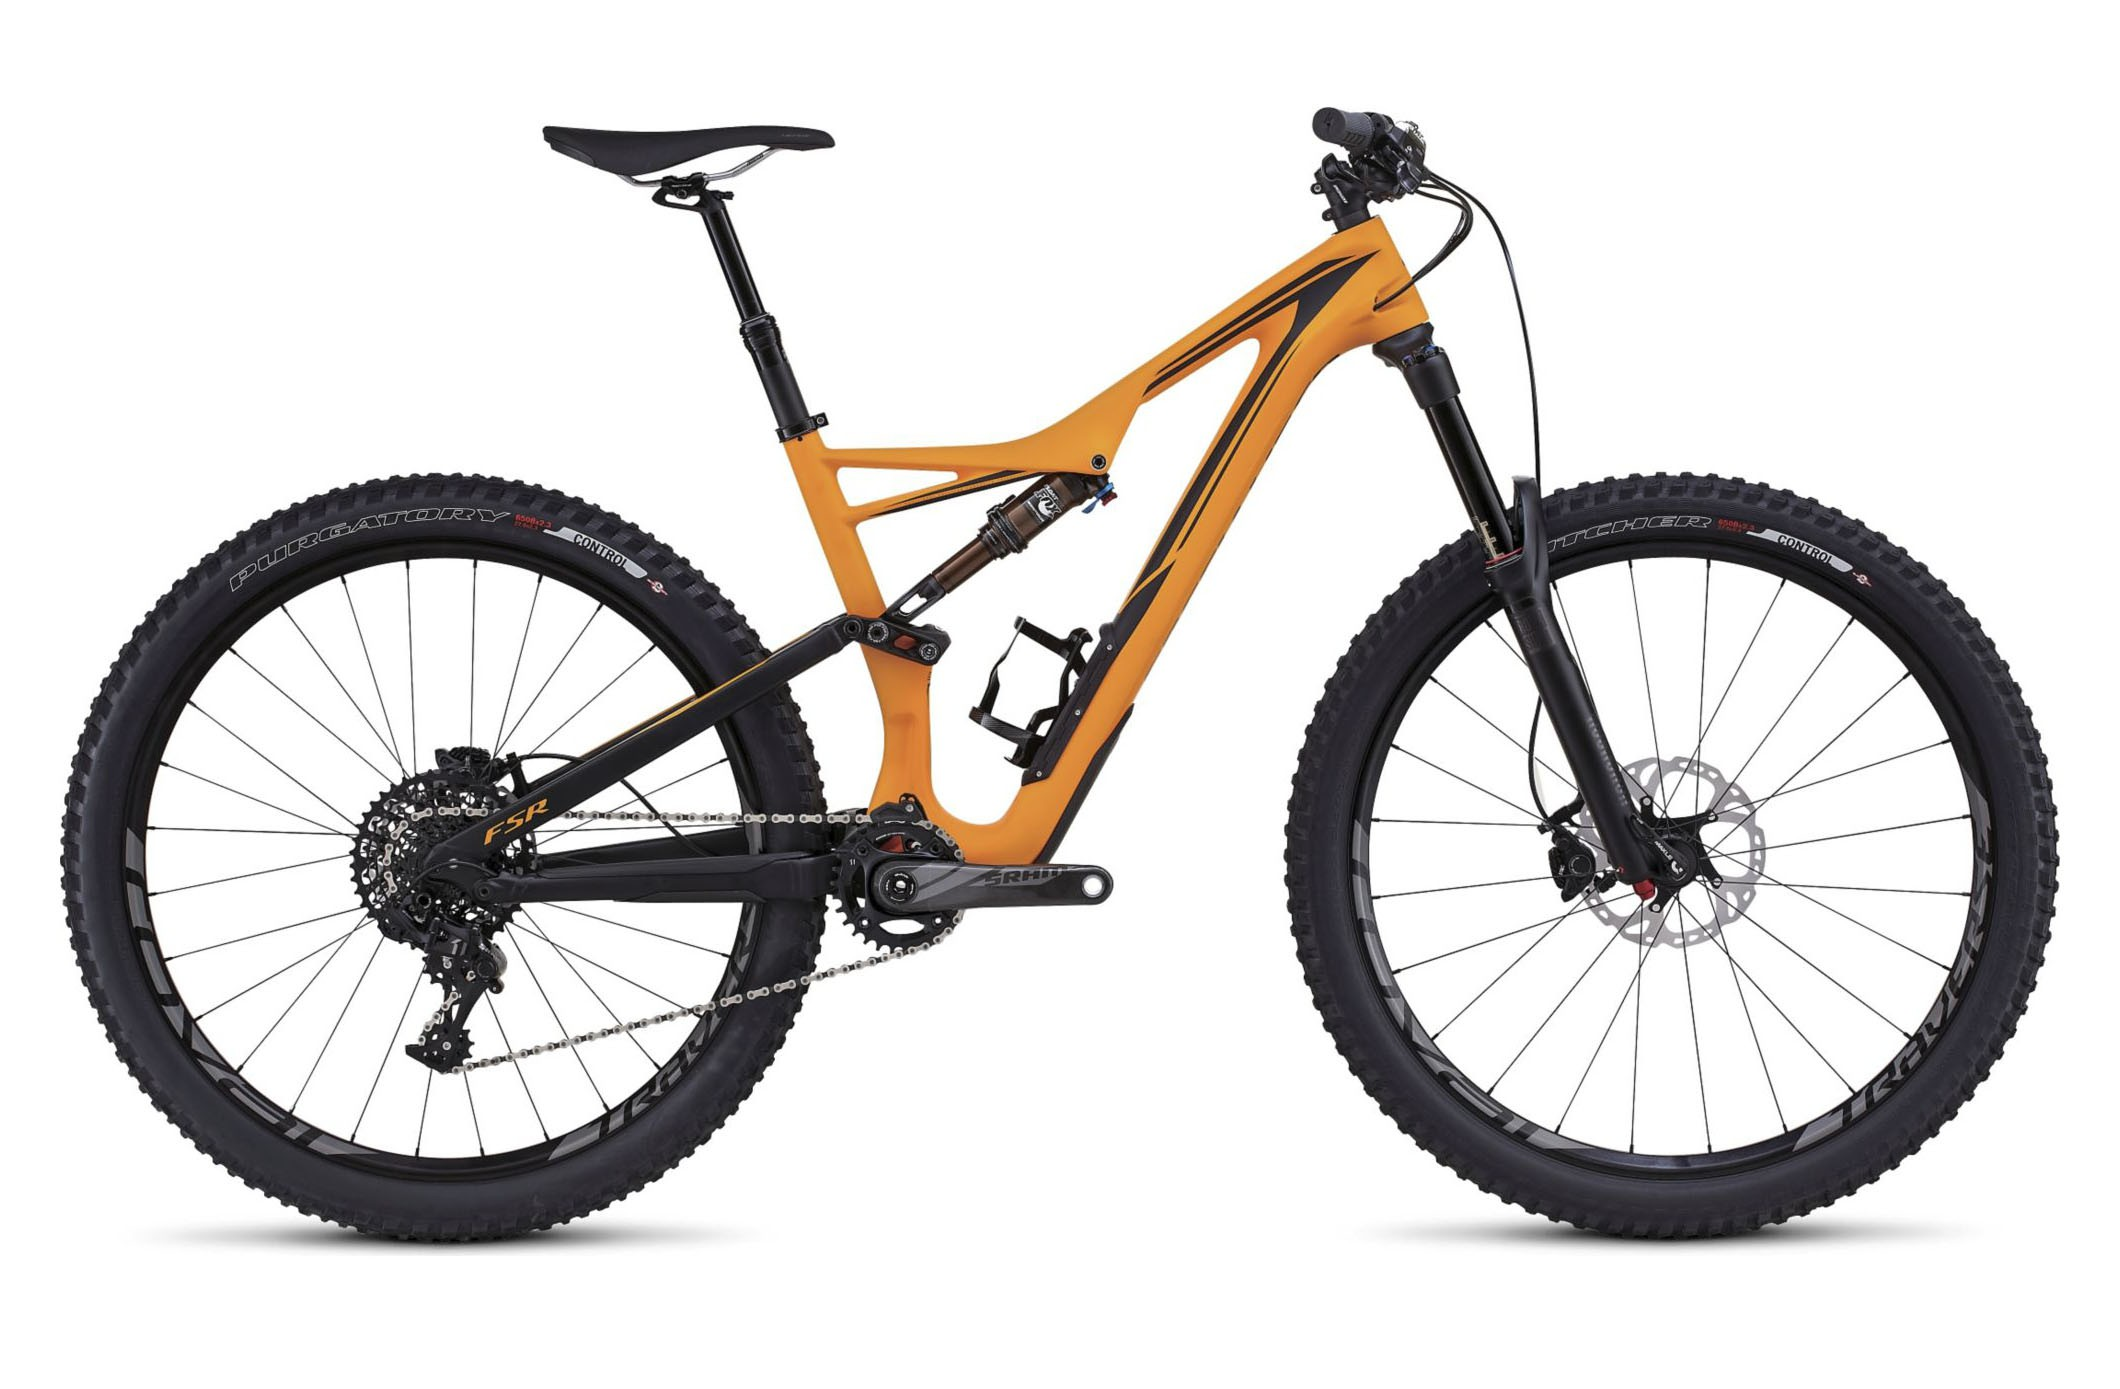 Горный велосипед Specialized Stumpjumper FSR Expert 650b (2016)